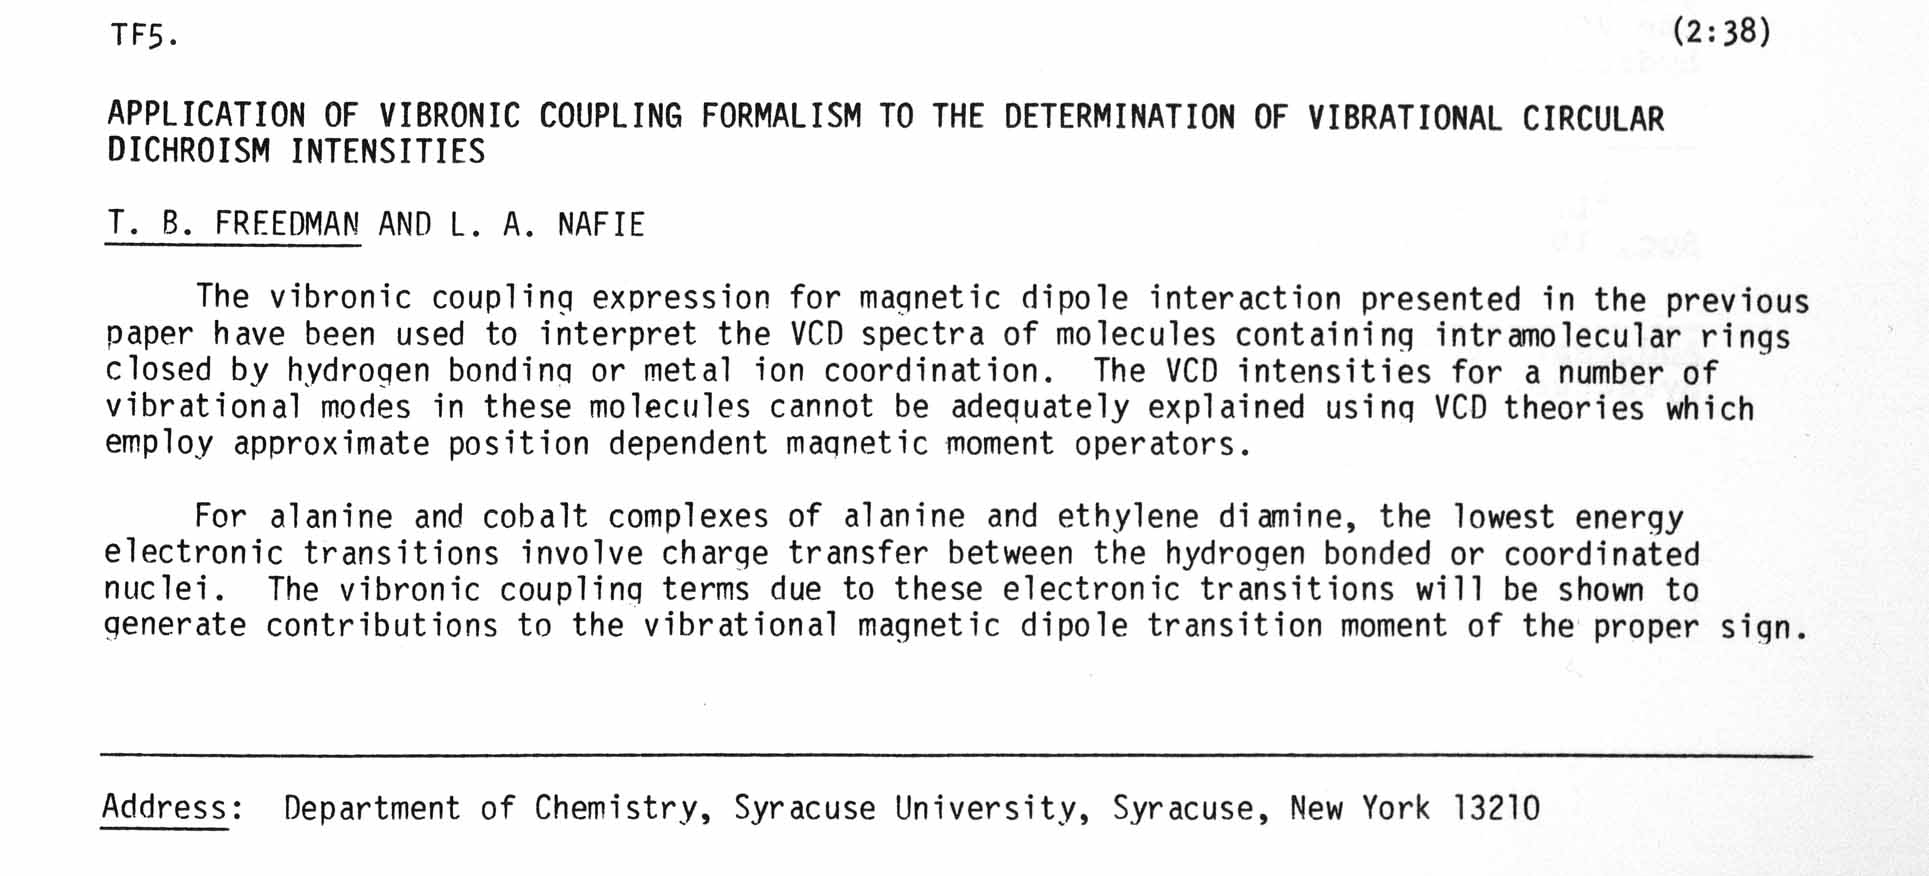 APPLICATION OF VIBRONIC COUPLING FORMALISM TO